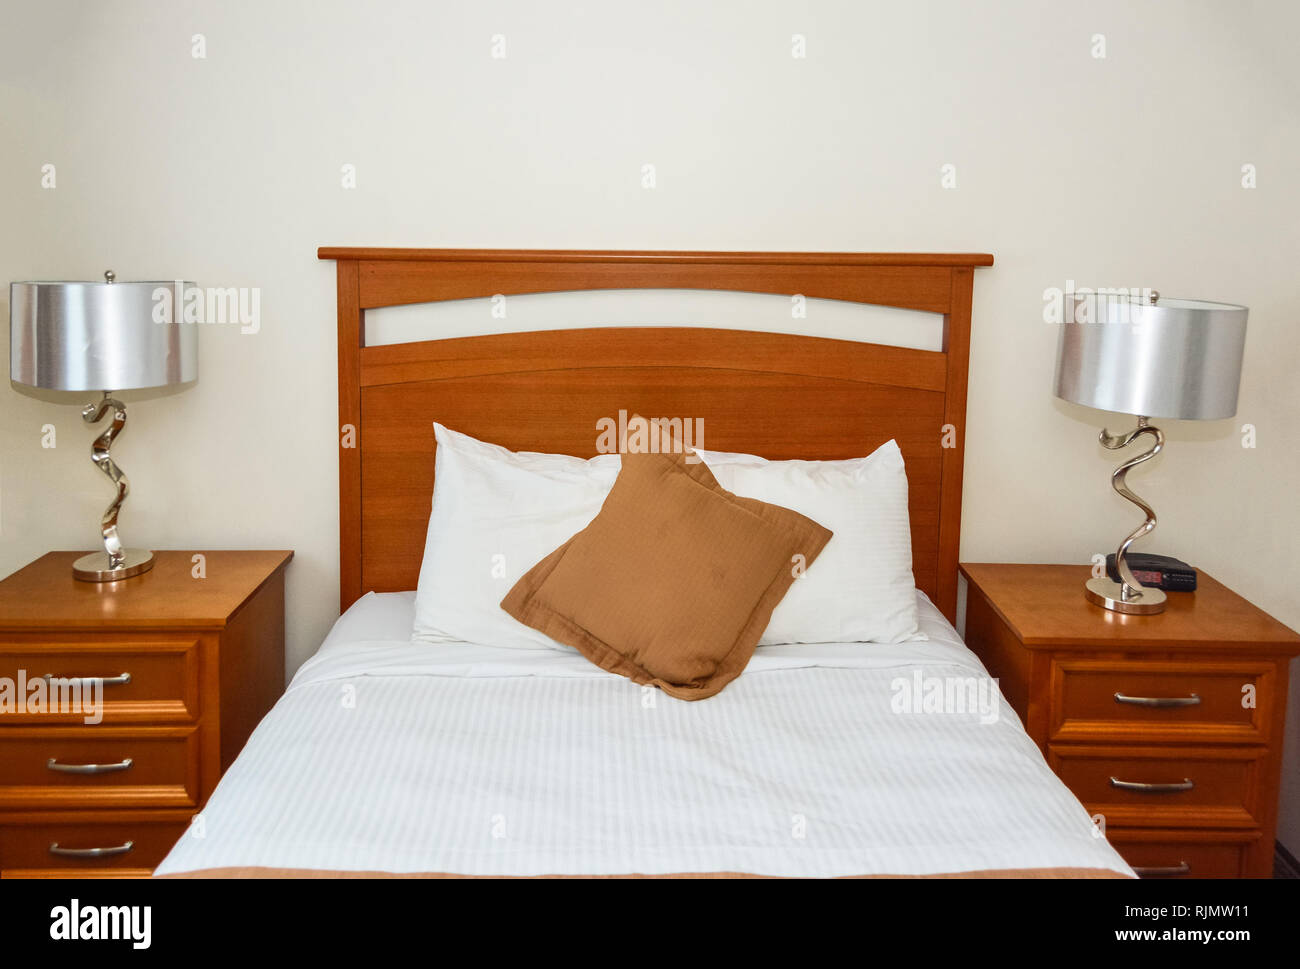 Twin bed in the bedroom with the lamp on bedside tables - Stock Image